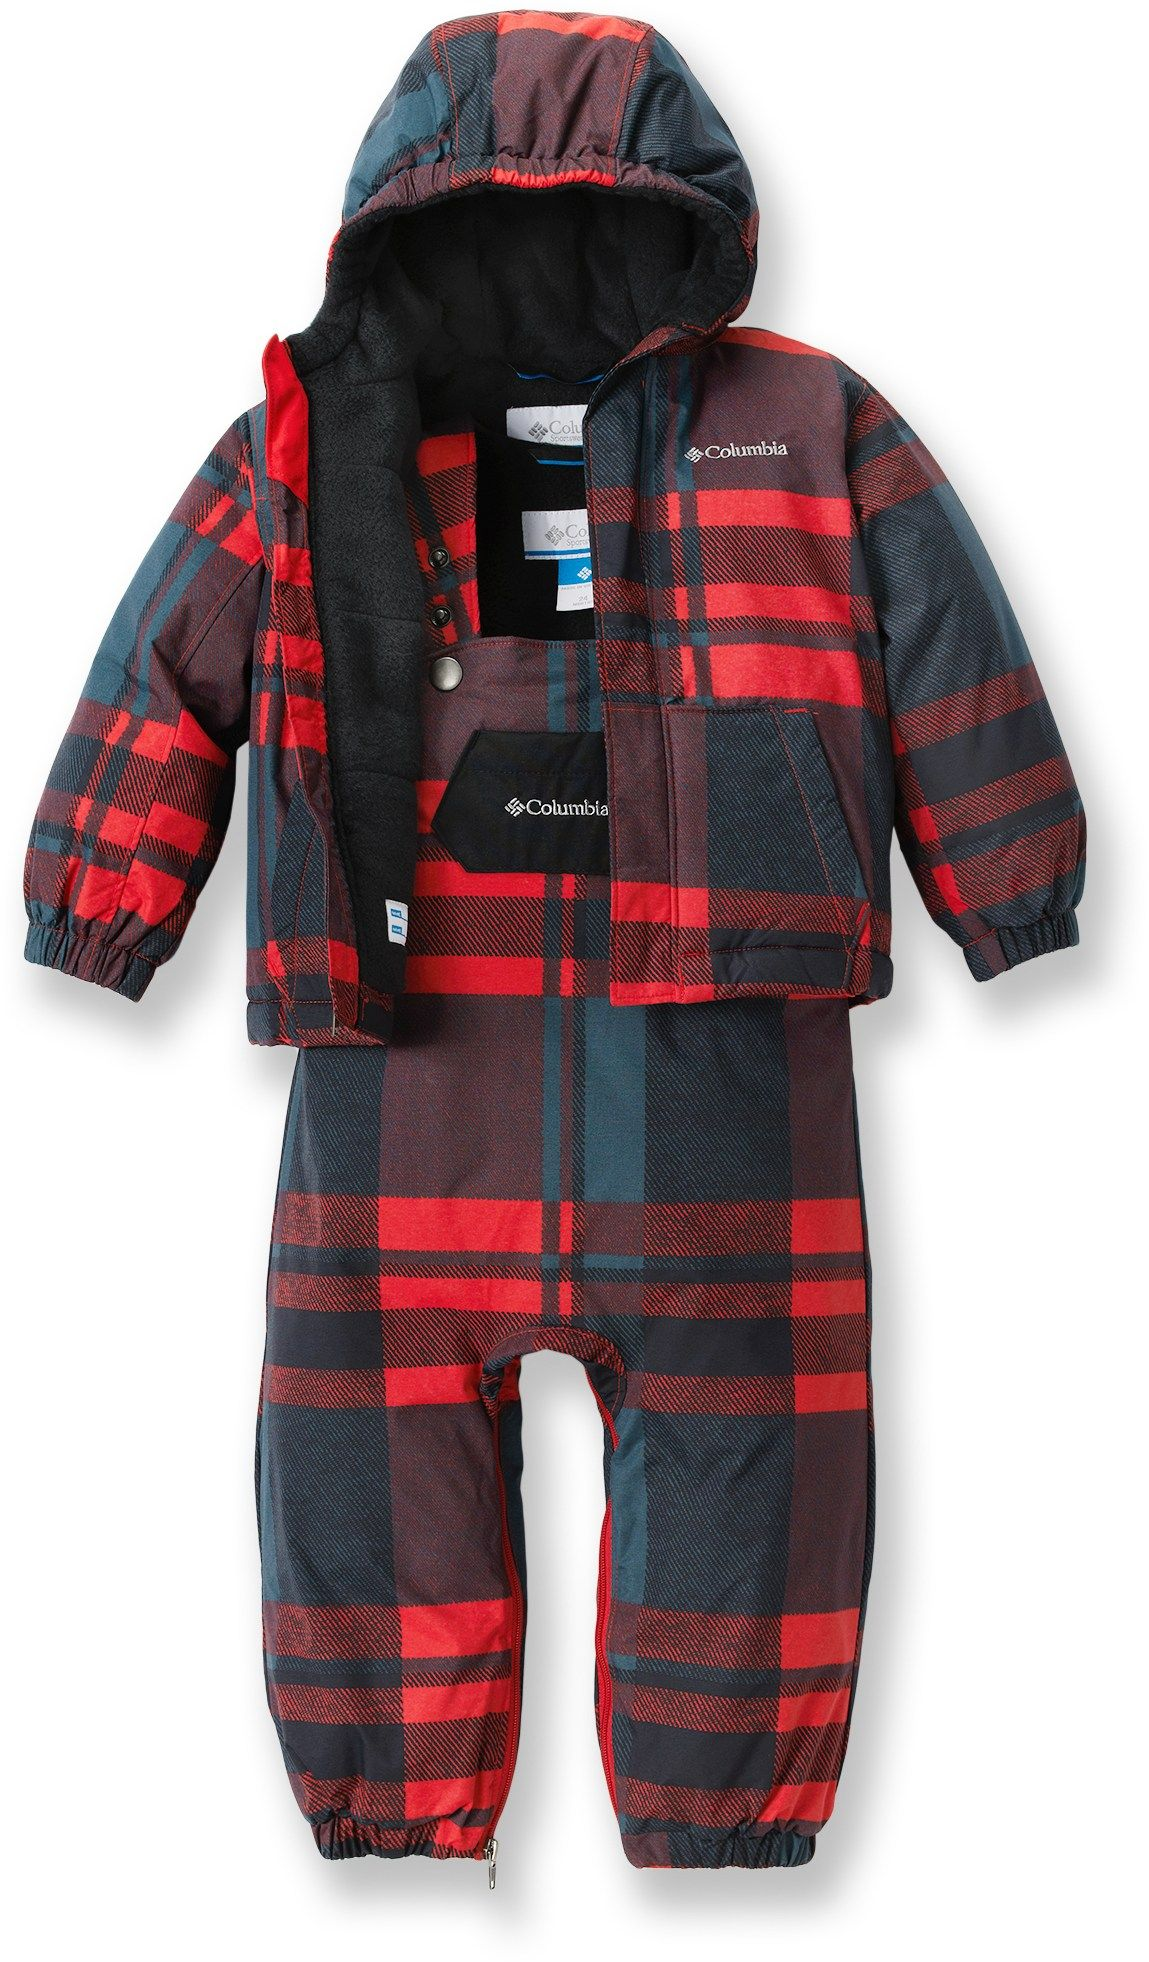 0e6235ce6 Columbia First Snow Snowsuit Set - Infant Boys  - Free Shipping at ...